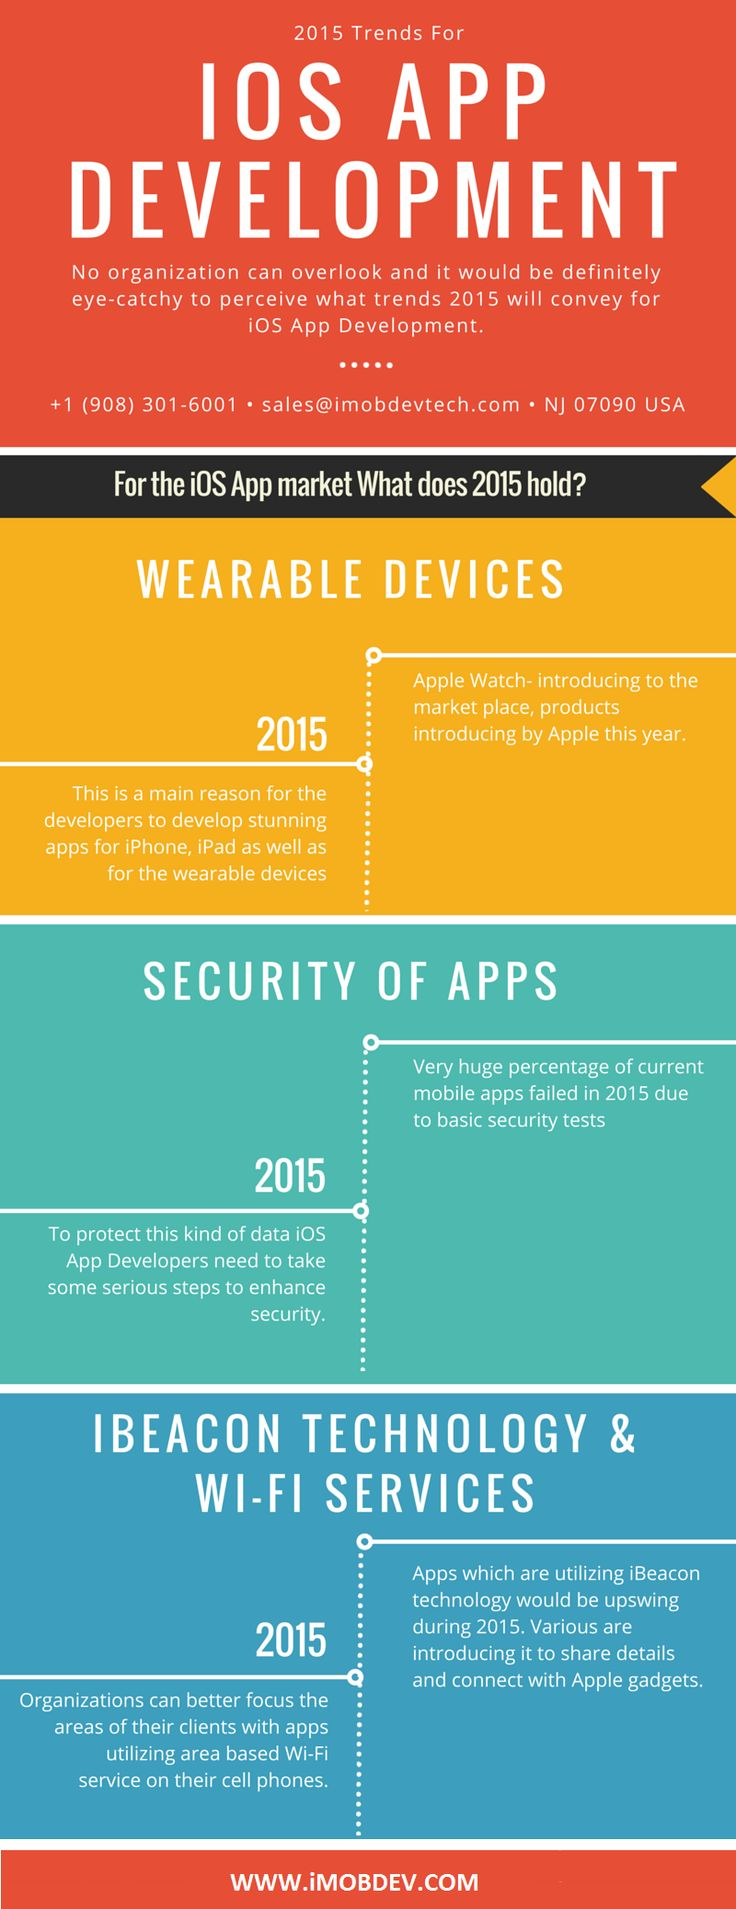 There Is Doubtlessly Ios Application Development Is A Deal That No Anization Can Overlook And It